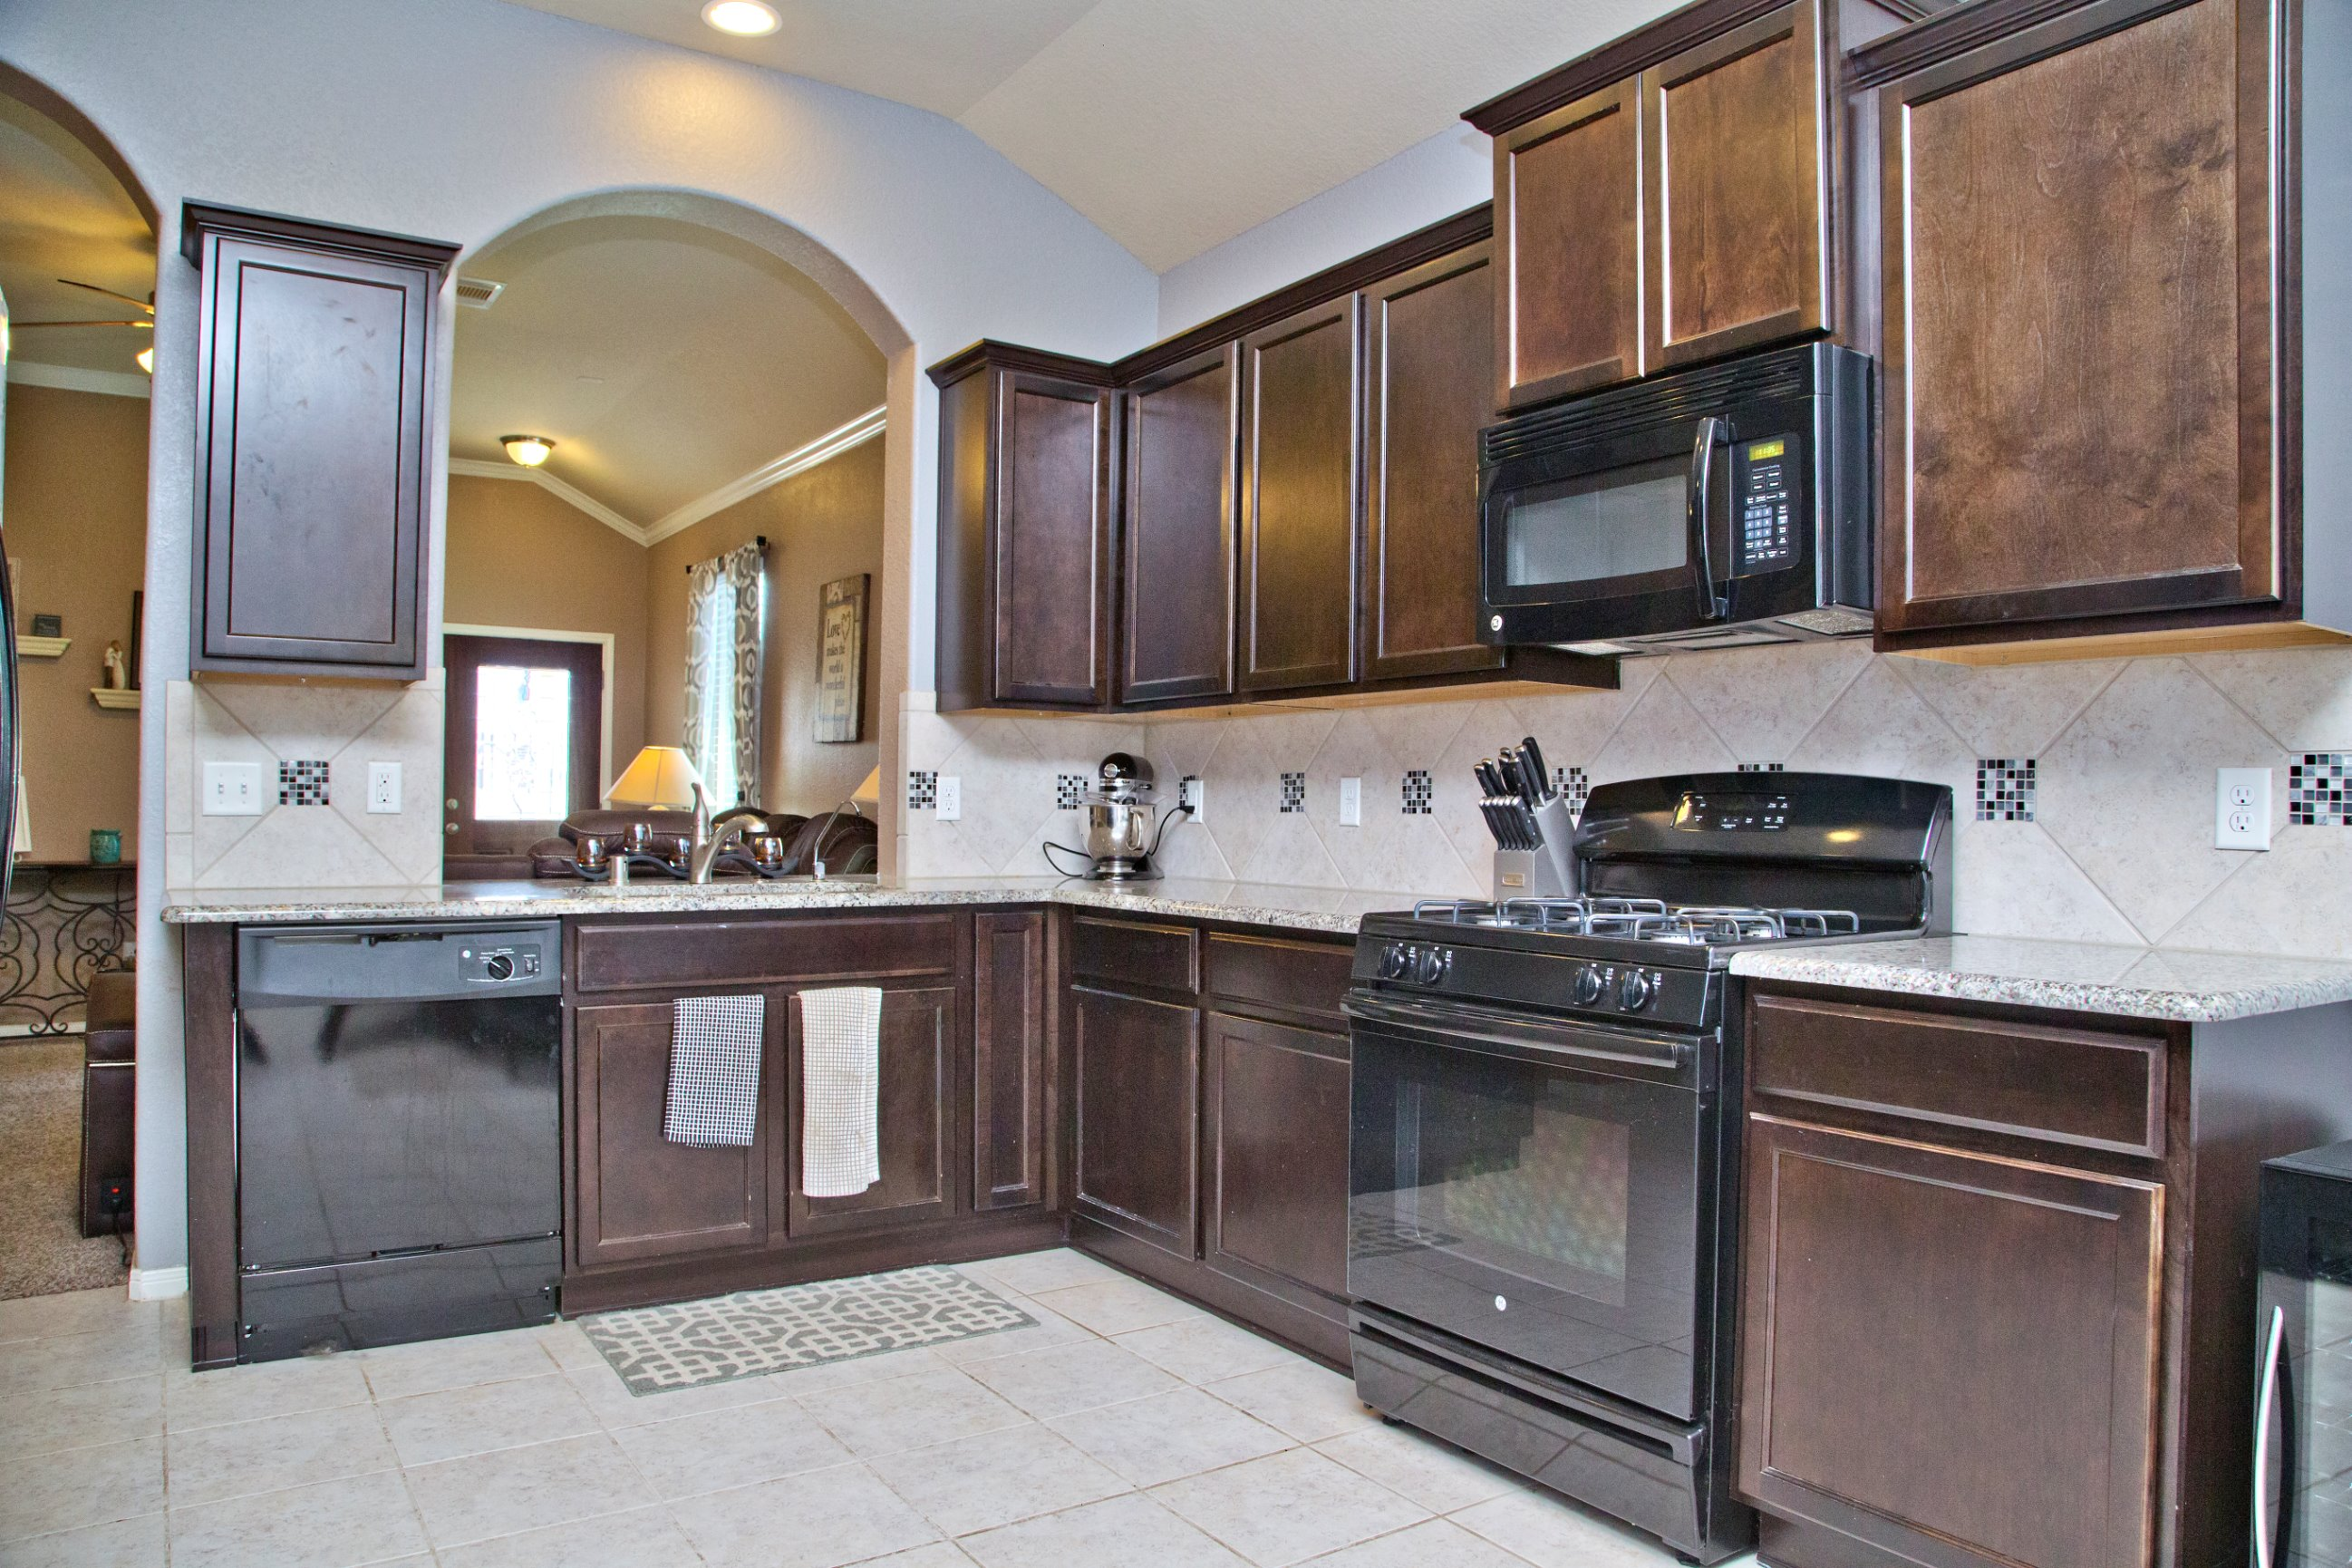 designer kitchens conroe tx 9430 elliots ct conroe tx 77304 diamondhomesrealty 505